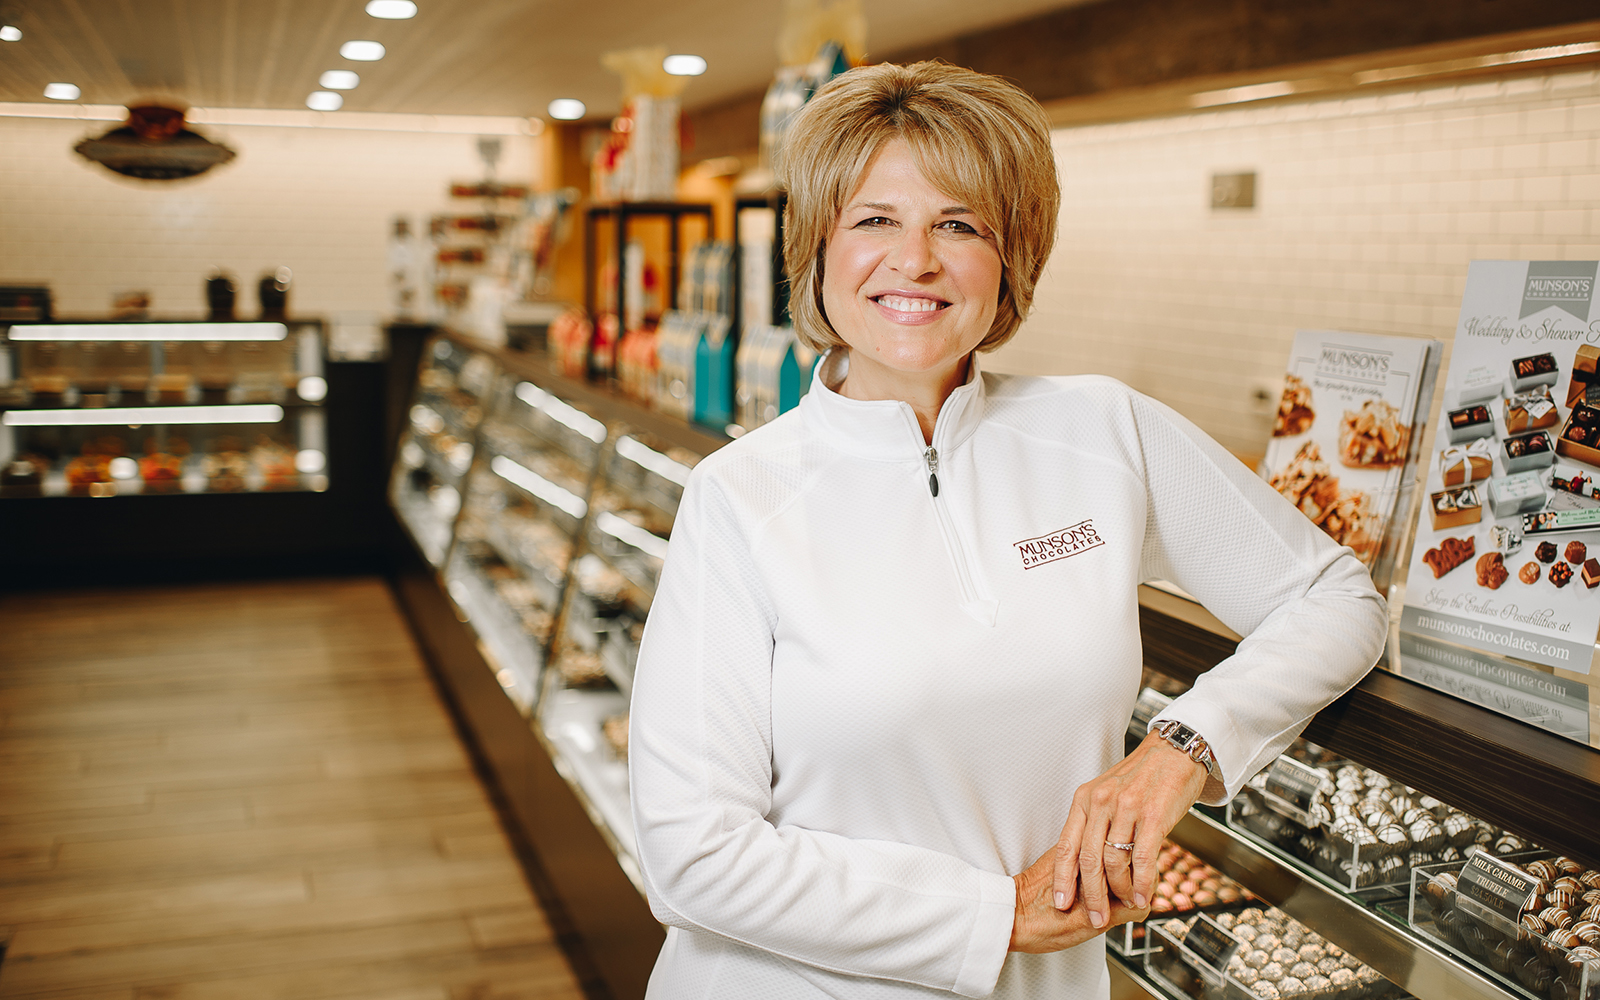 Karen Munson, the president of Munson's Chocolates, in her retail store in Bolton, CT. At this location, Munson's produces 350,000 pounds of chocolate per year. (Nathan Oldham / UConn School of Business)